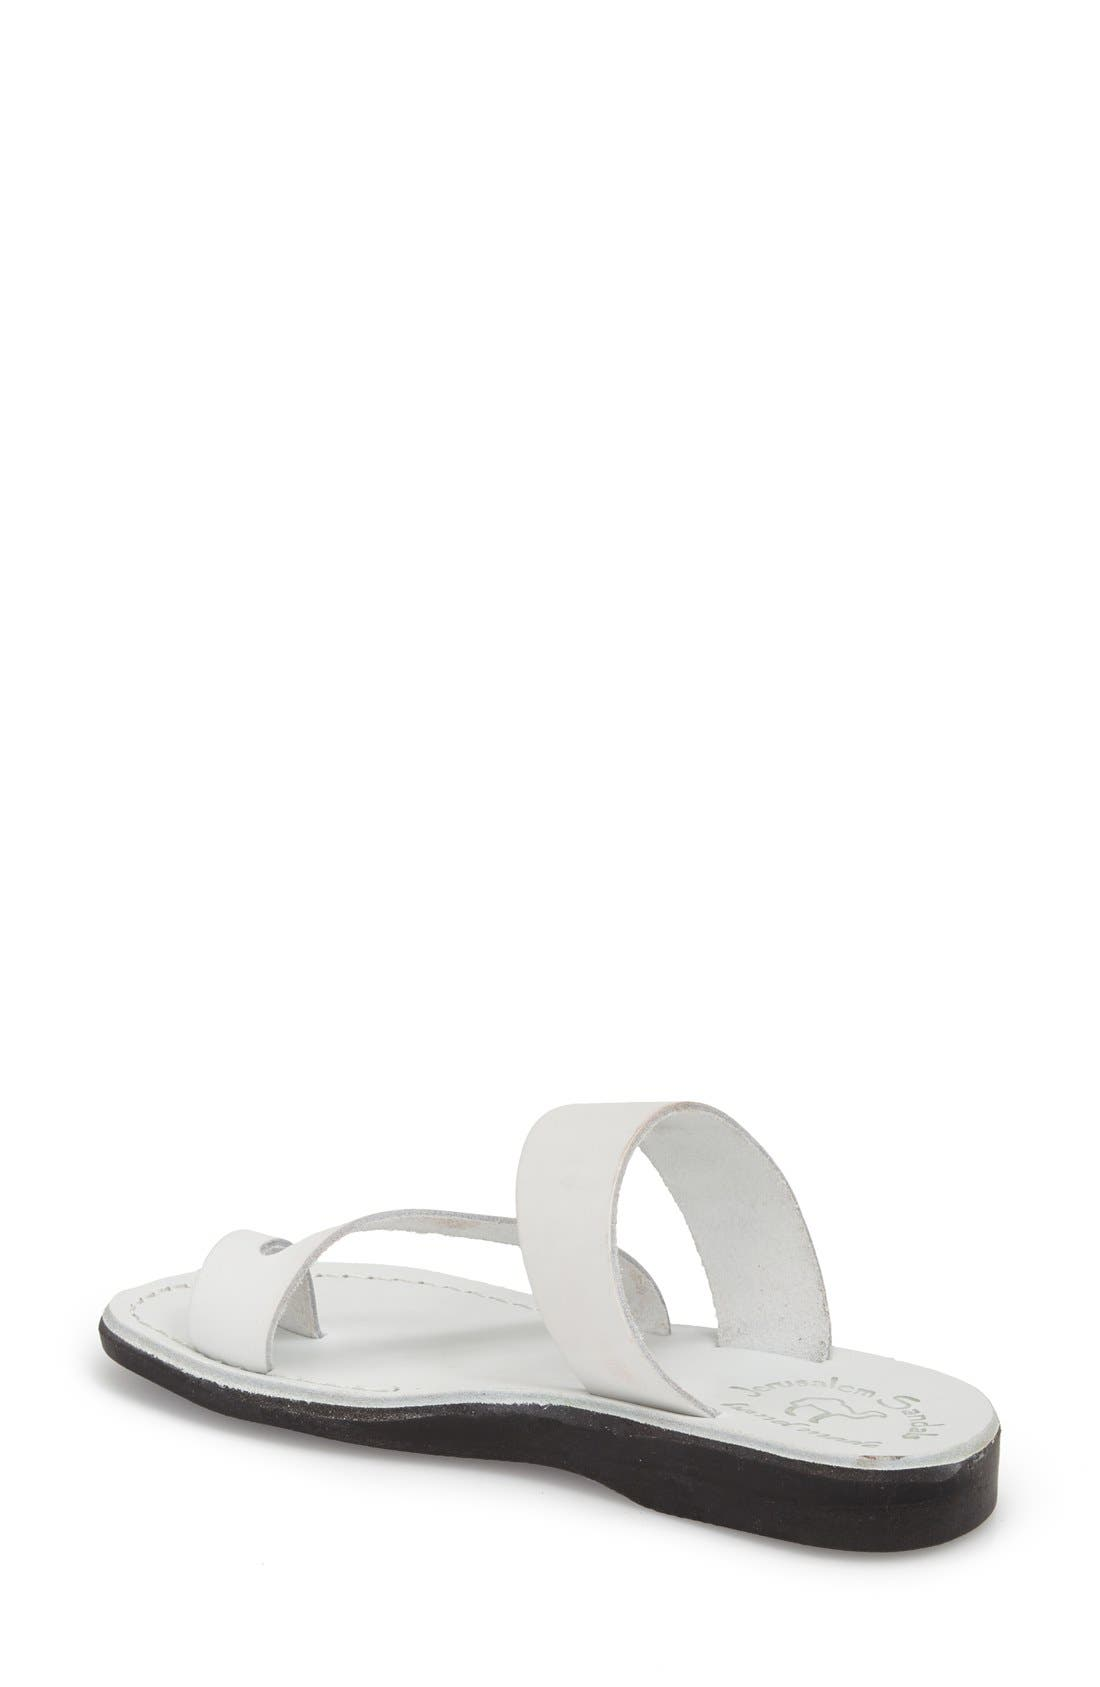 'Zohar' Leather Sandal,                             Alternate thumbnail 10, color,